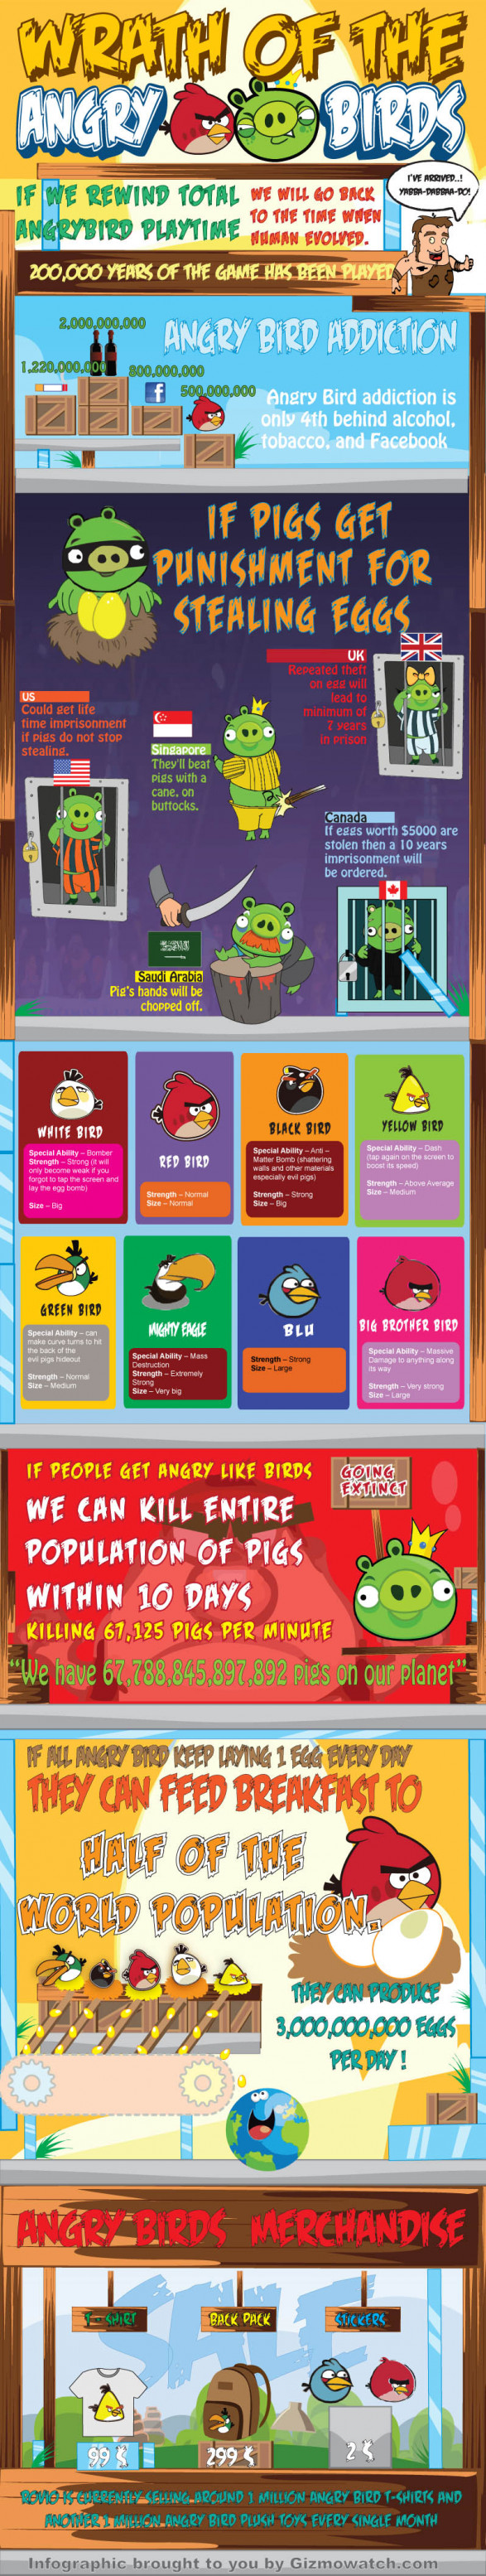 november2011damncoolpictures 4f1ea4288514a w587   The Wrath Of The Angry Birds [INFOGRAPHIC]